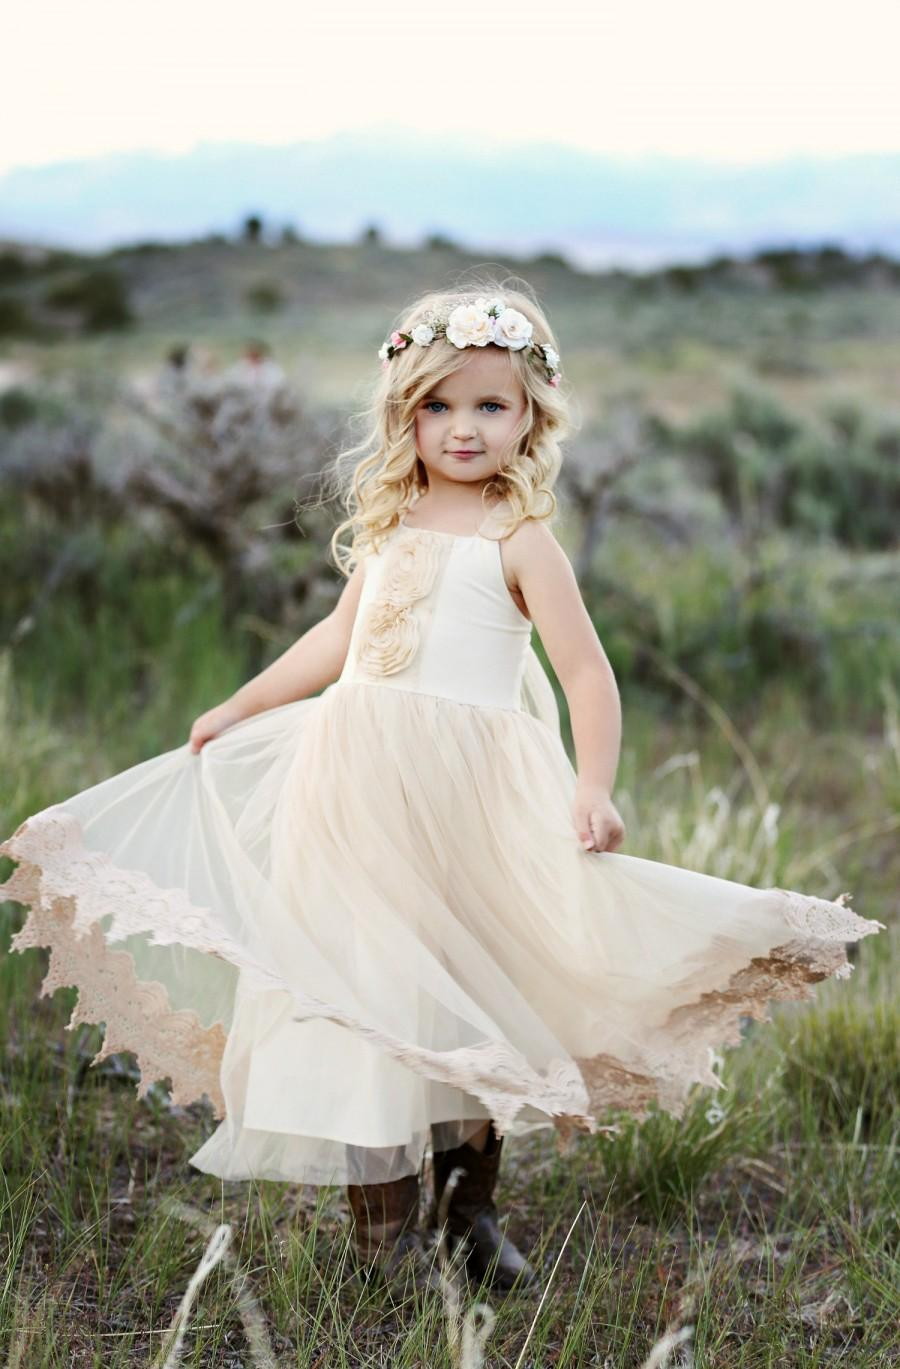 Ivory Flower Girl Dress Ivory and Champagne flower girl dress Rustic Flower Girl Dresses Flower Girl Dresses Dresses Flower Girl Dress